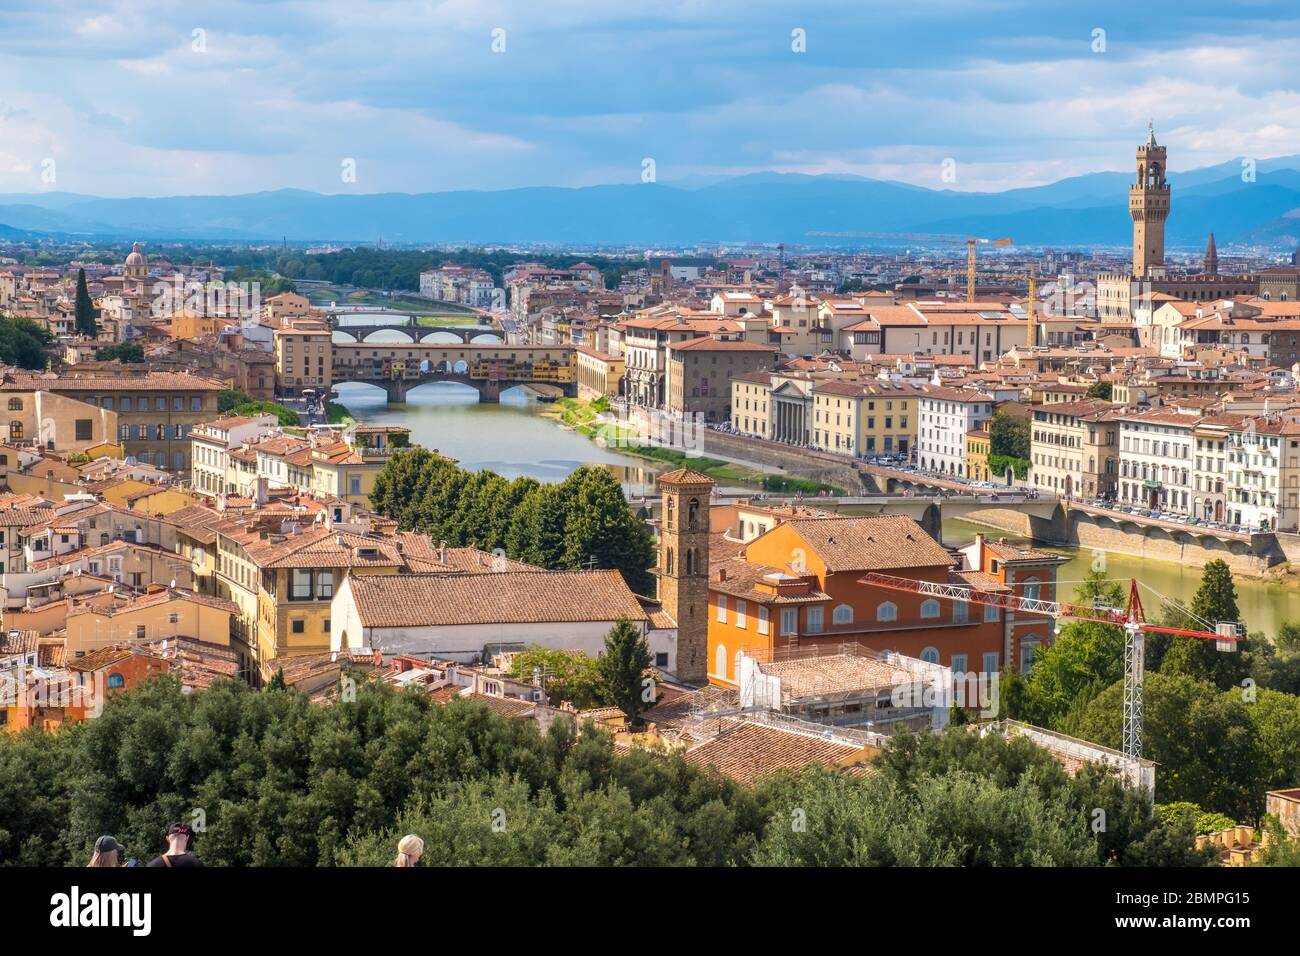 Florence, Italy - August 16, 2019: View of Florence Skyline and landscape of Tuscany, Italy Stock Photo